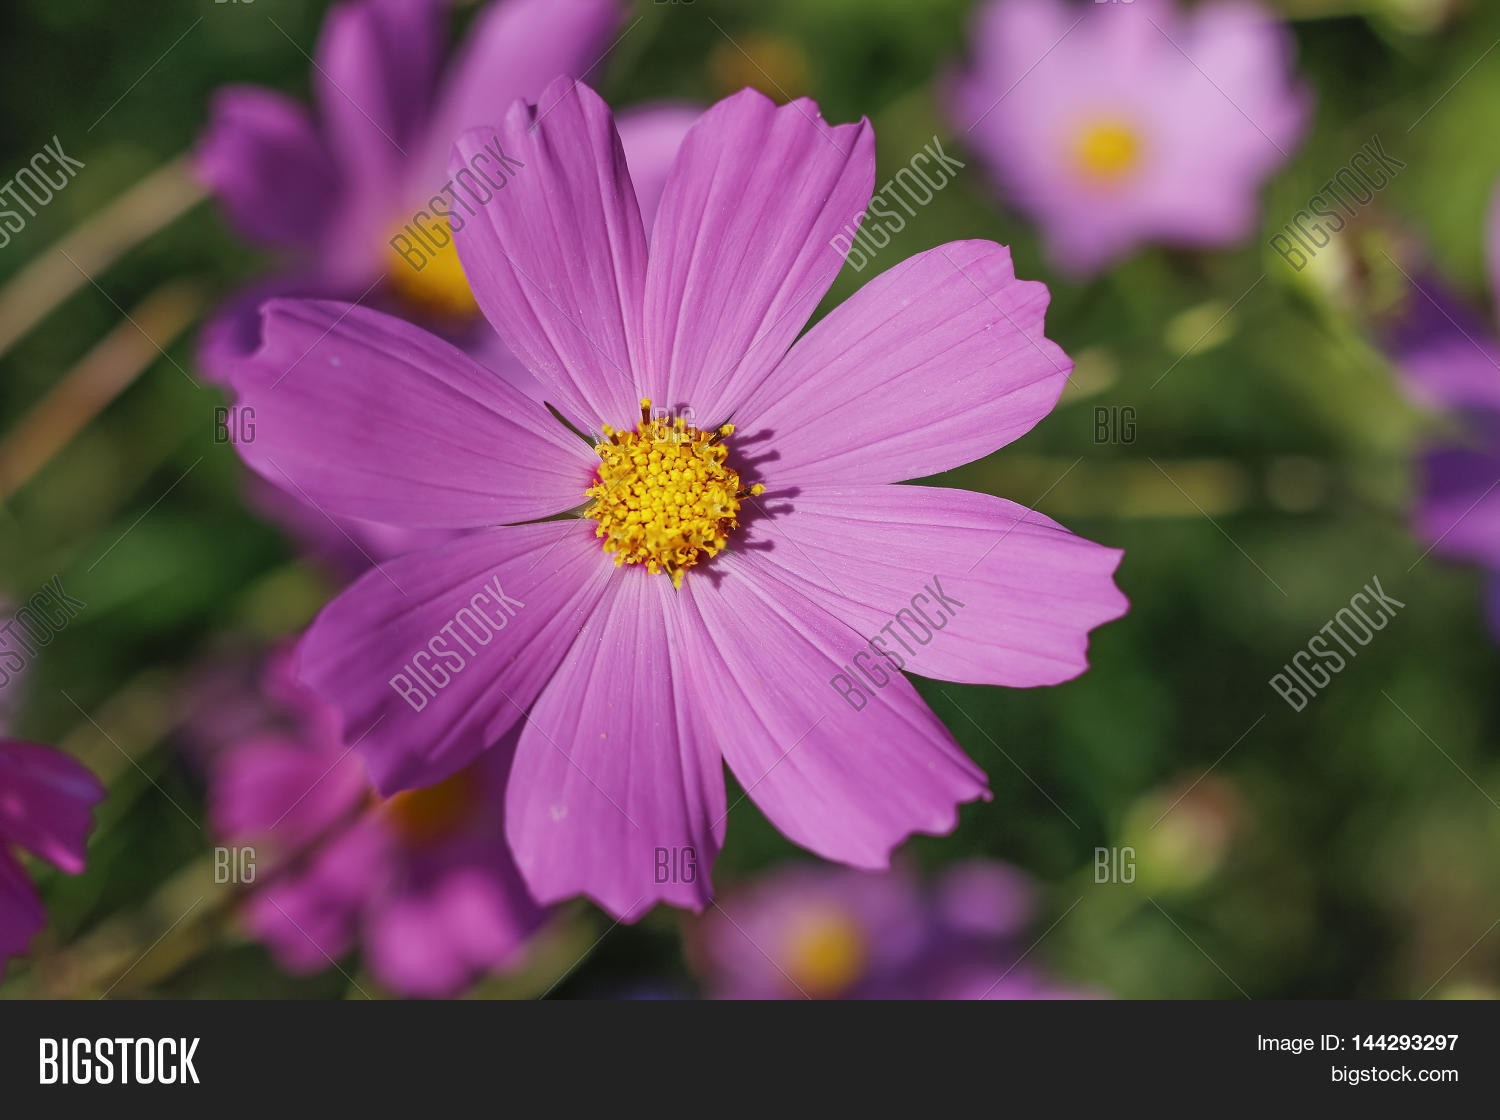 Pink purple flower image photo free trial bigstock pink purple flower like a daisy in the light of the setting sun izmirmasajfo